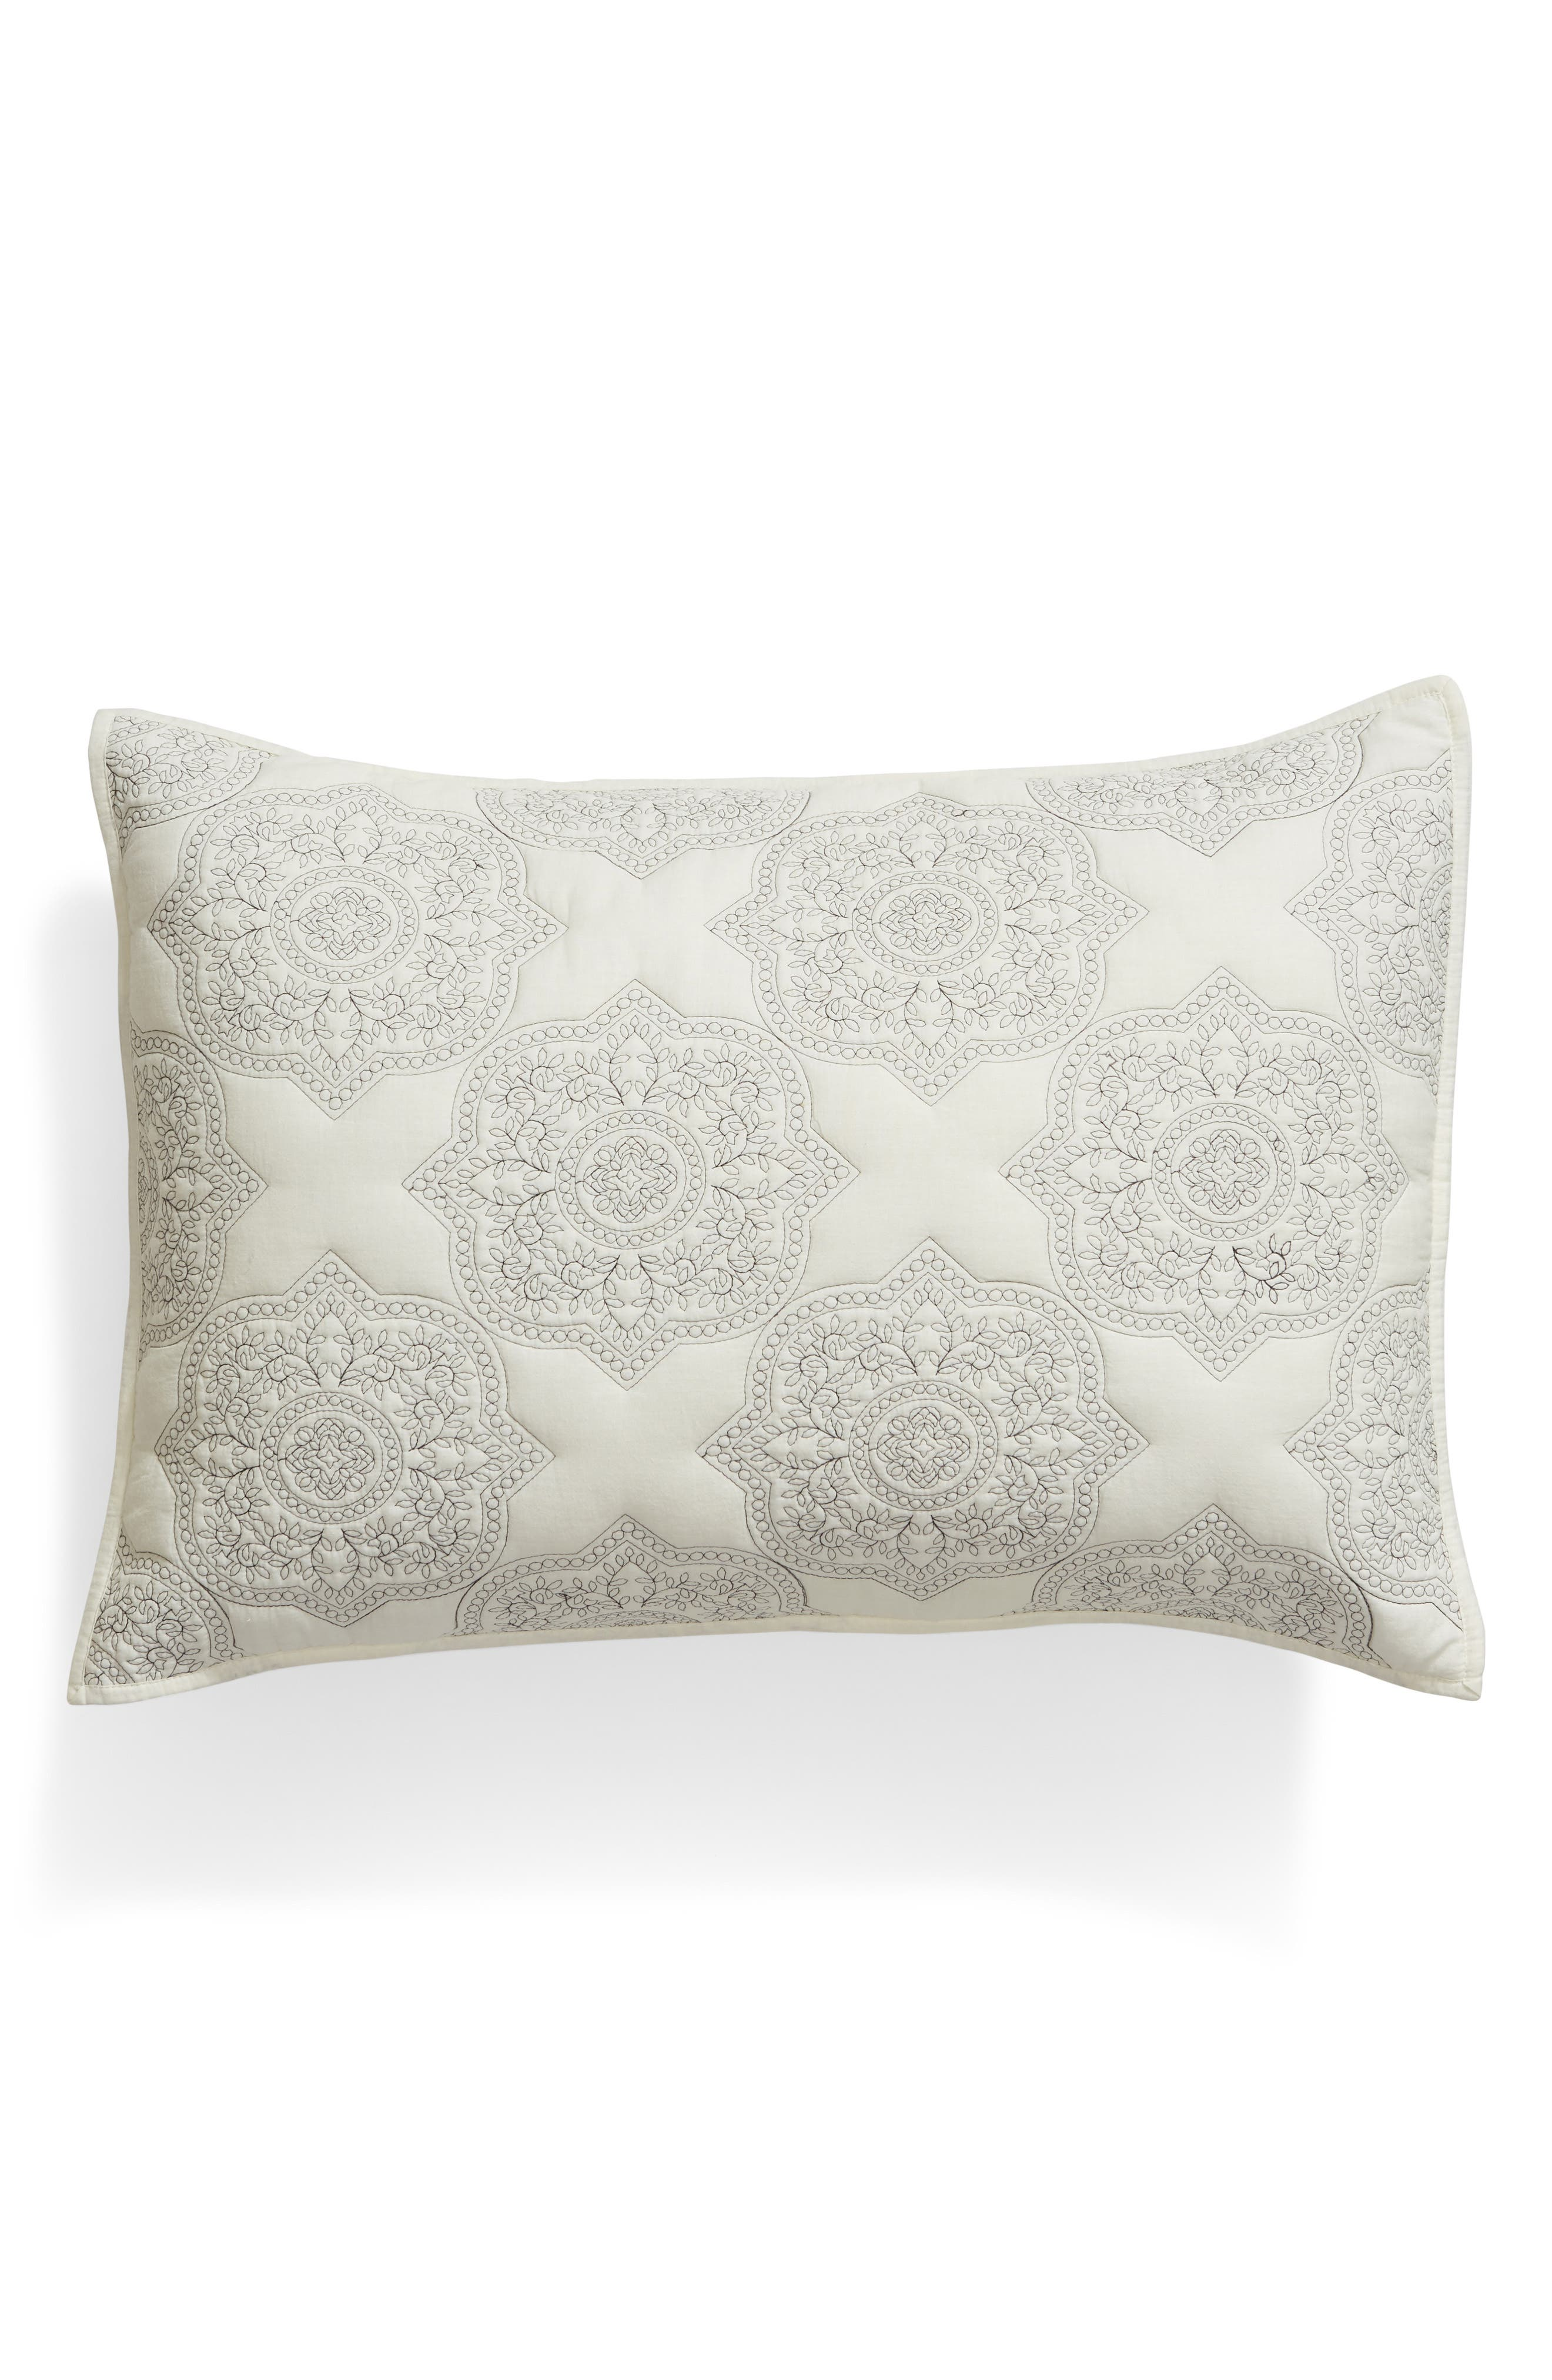 Ria Embroidered Sham,                             Main thumbnail 1, color,                             IVORY